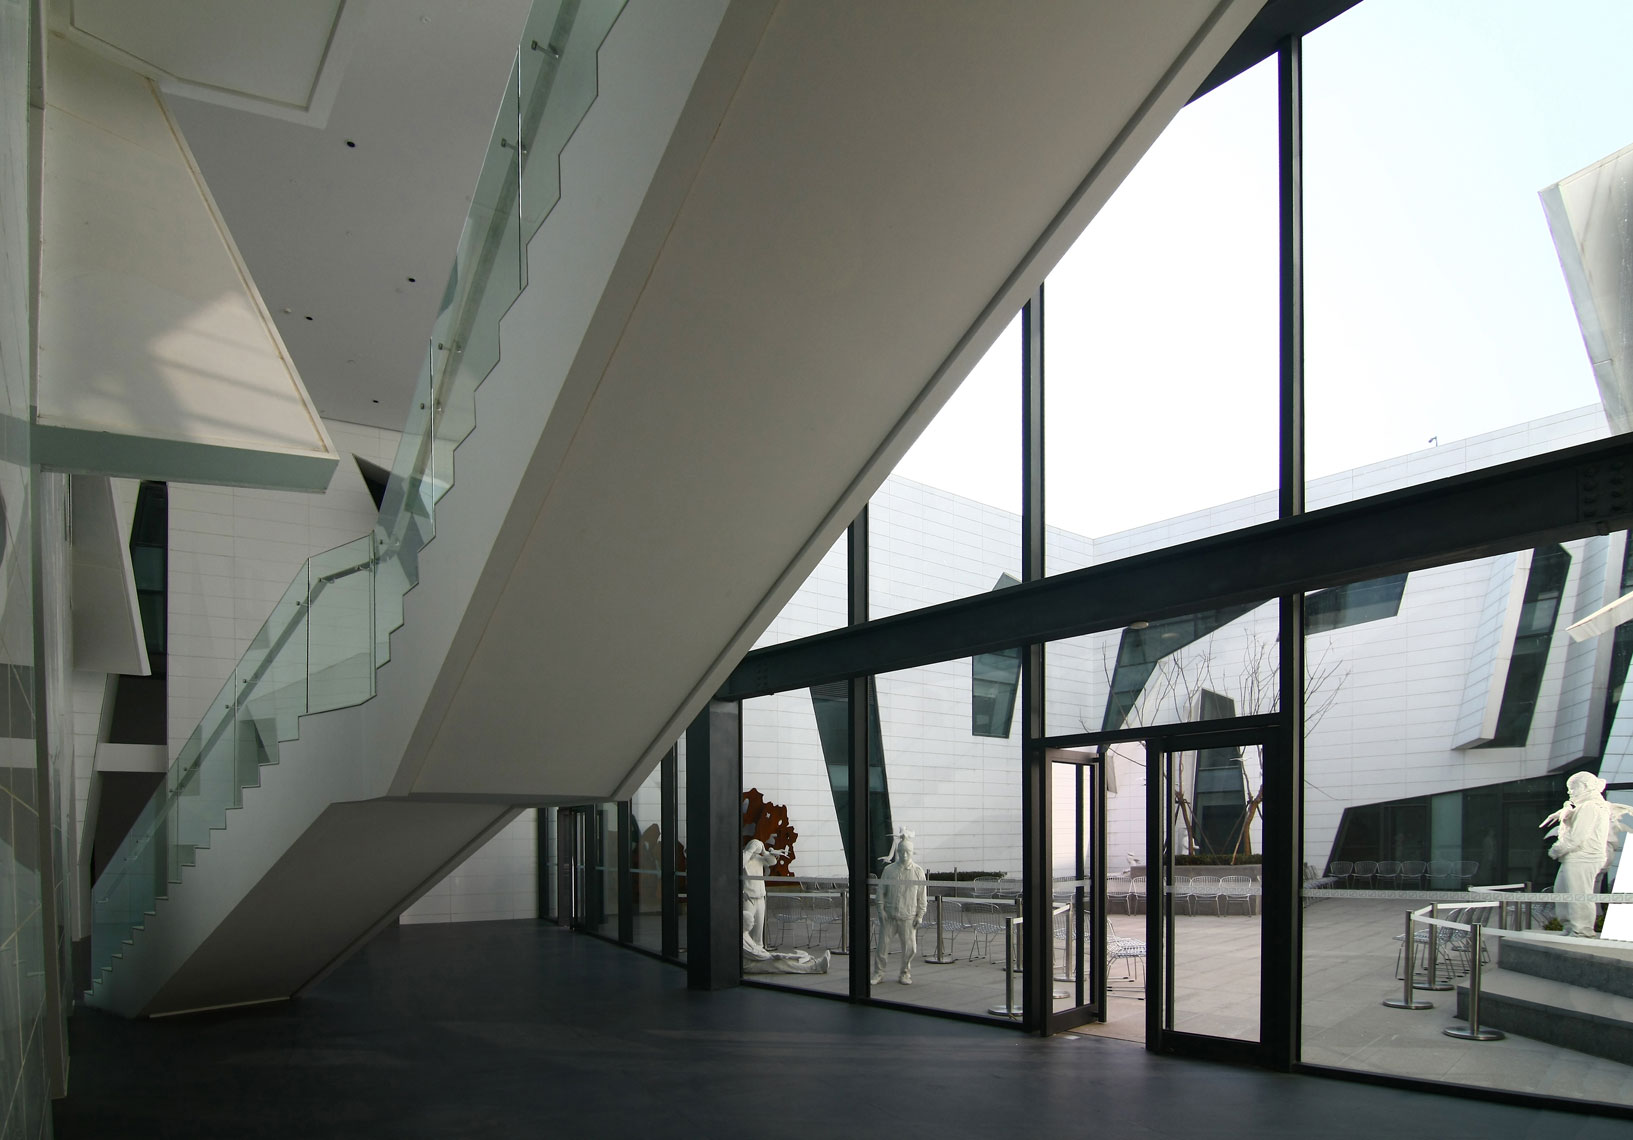 david-hu-architect-commercial-hospitality_wuhan-museum_38.jpg